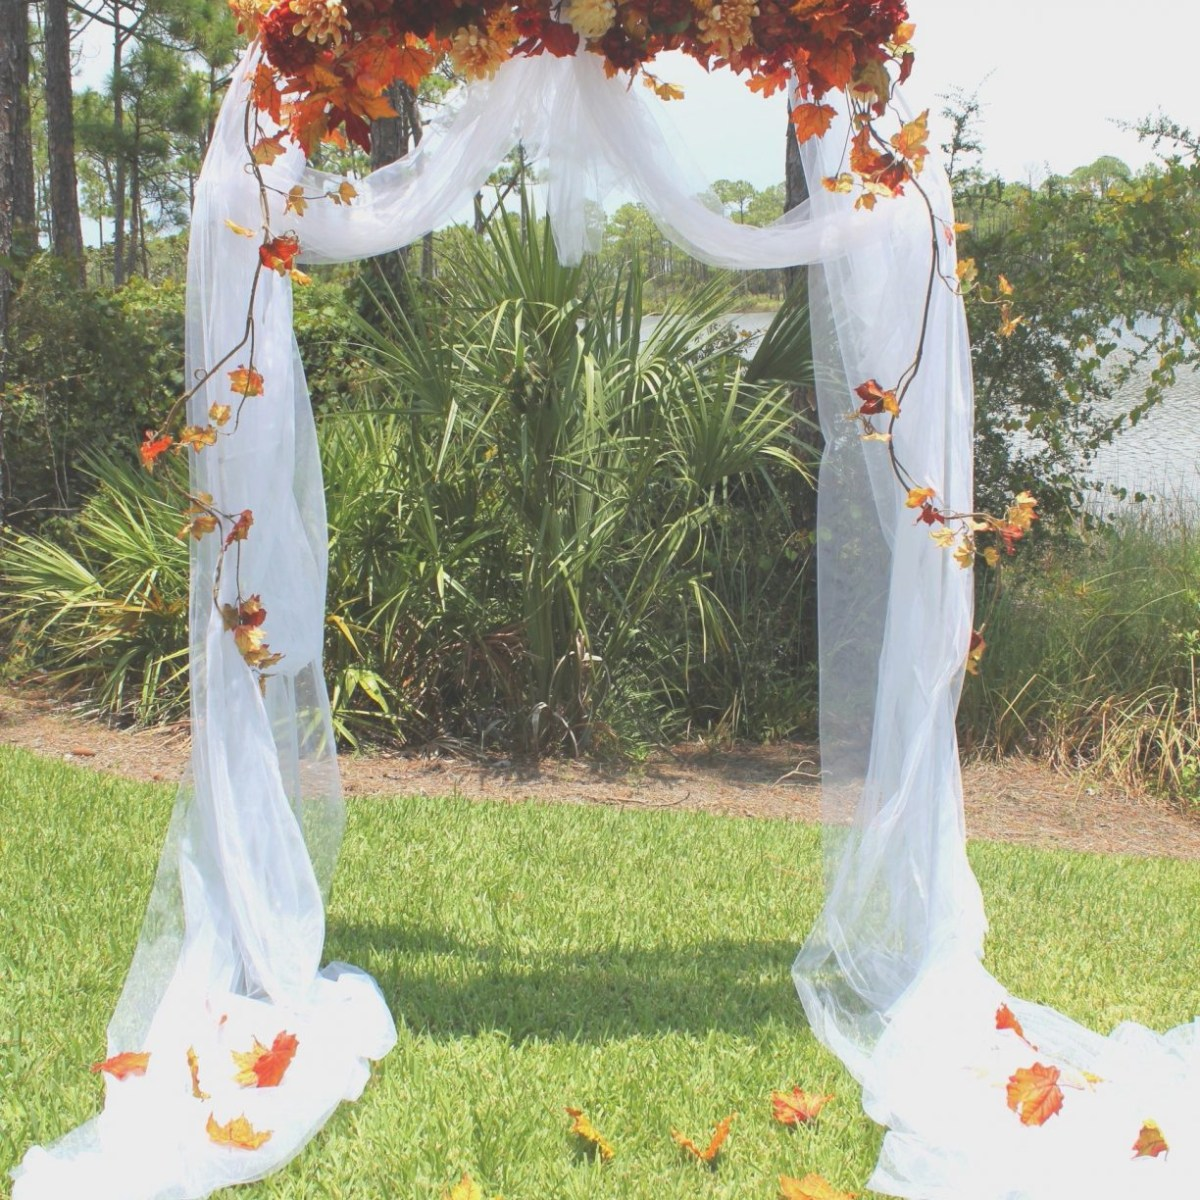 Arch Decorations For Weddings Weddingorations Beautiful Archoration Ideas Praise Images Oforated